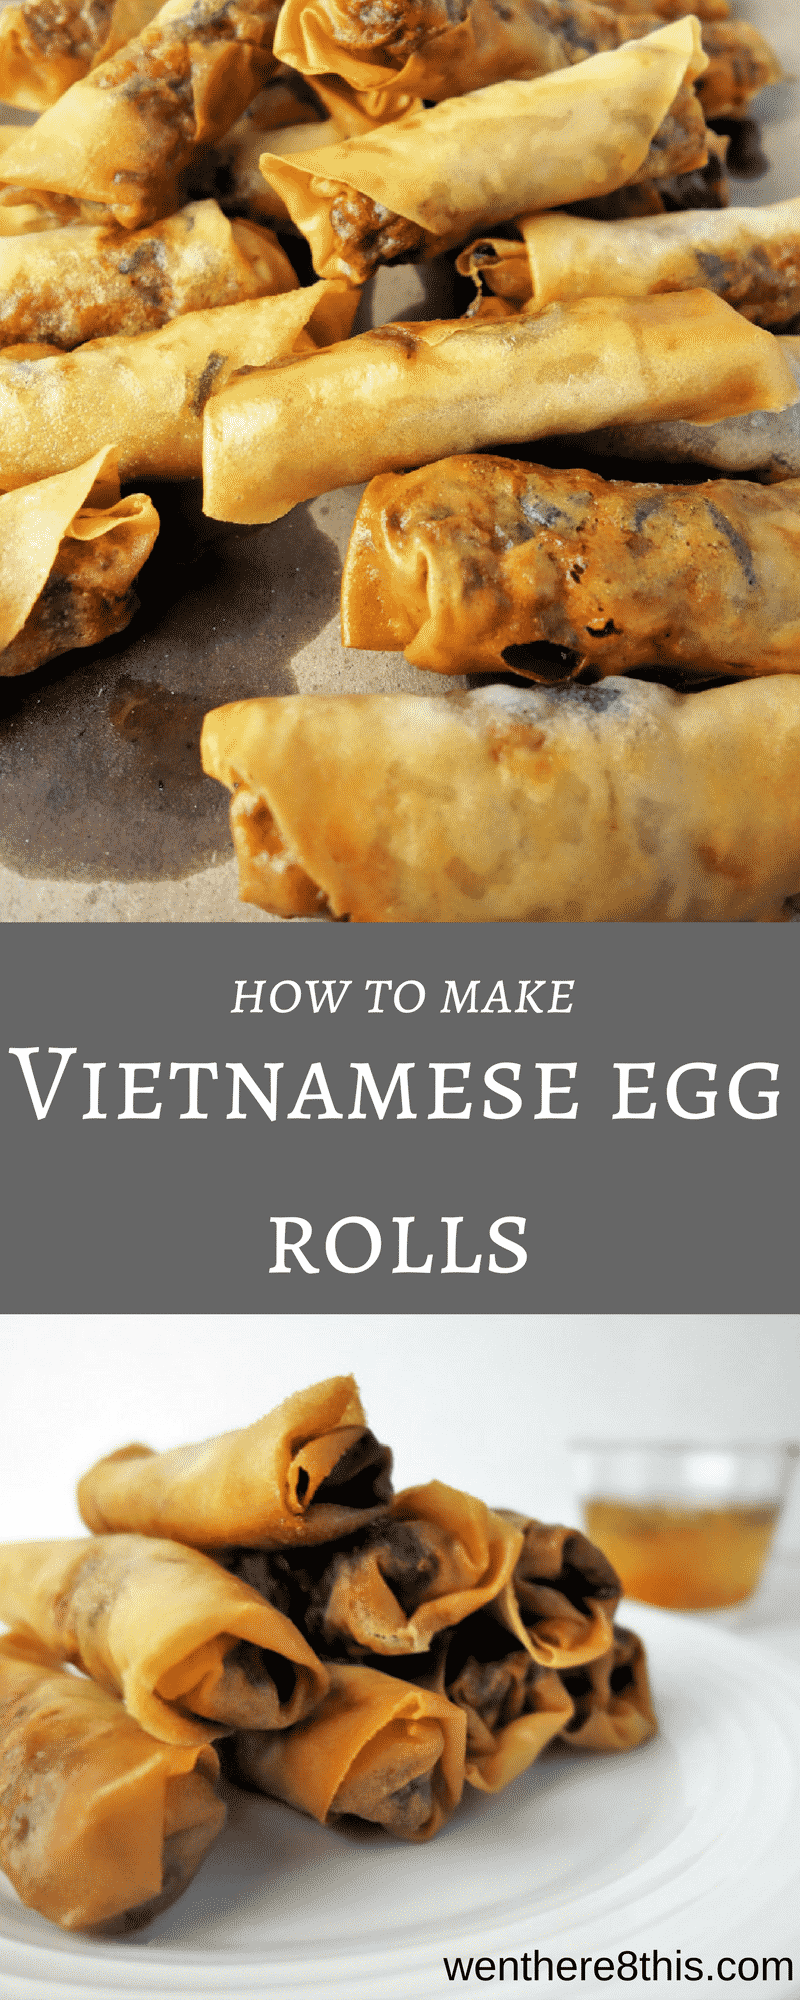 Learn how to make Vietnamese egg rolls with nuoc cham dipping sauce! It's impossible to just eat one of these little pieces of heaven.egg roll recipes, easy vietnamese egg rolls, Vietnamese spring rolls, Vietnamese fried spring rolls, Vietnamese fried egg rolls, fried spring rolls easy, fried spring rolls recipe, egg rolls recipes easy